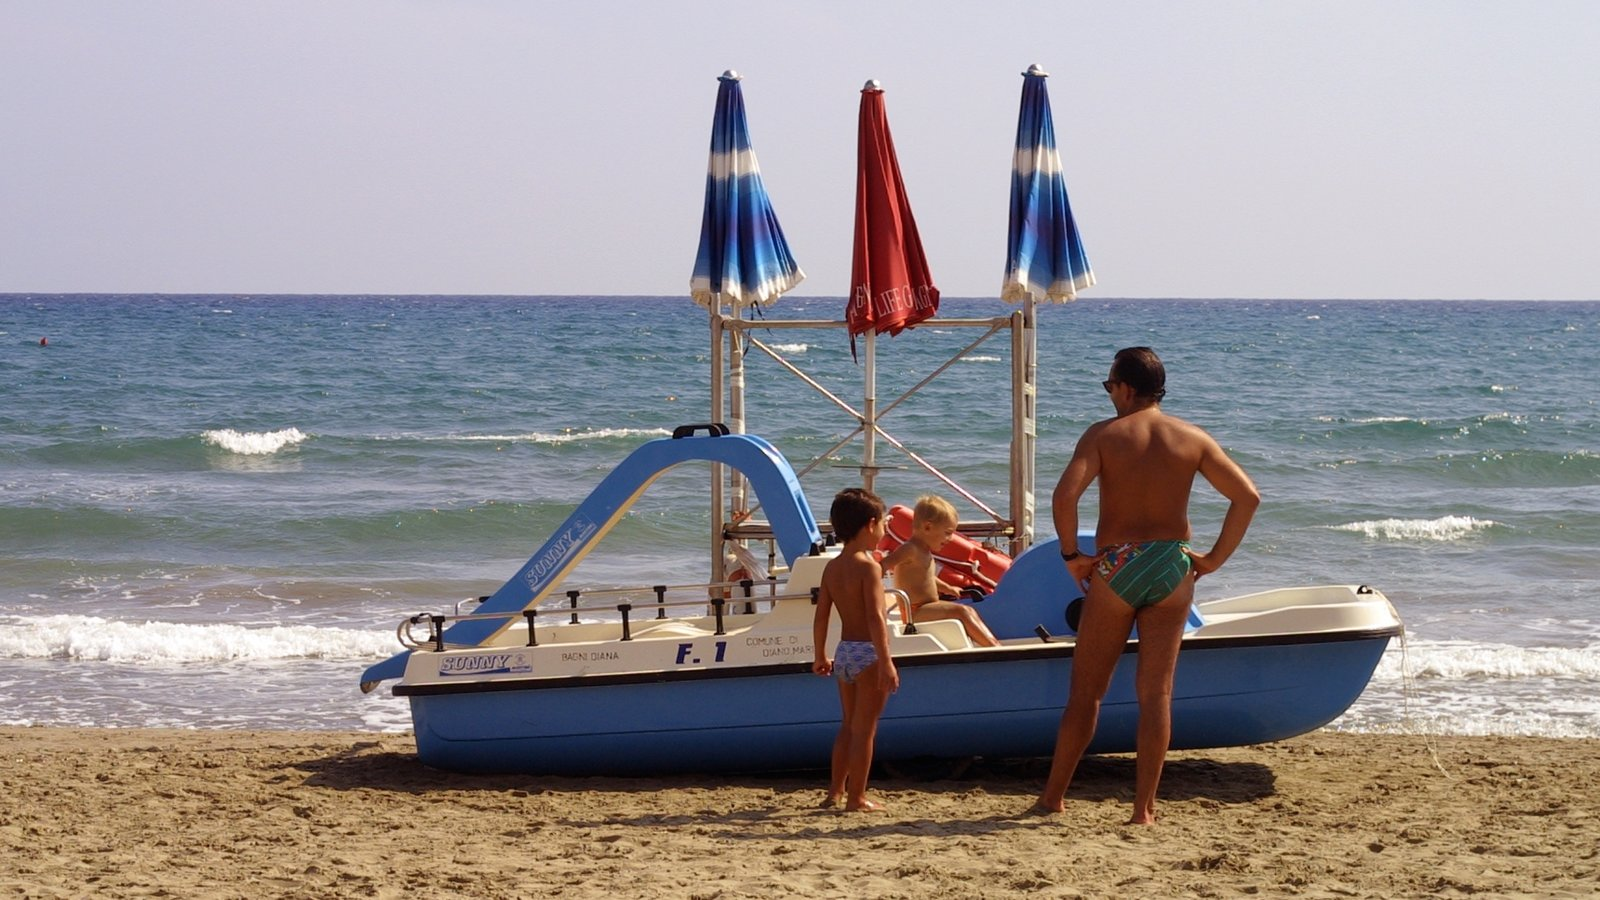 Diano Marina featuring a beach as well as a family